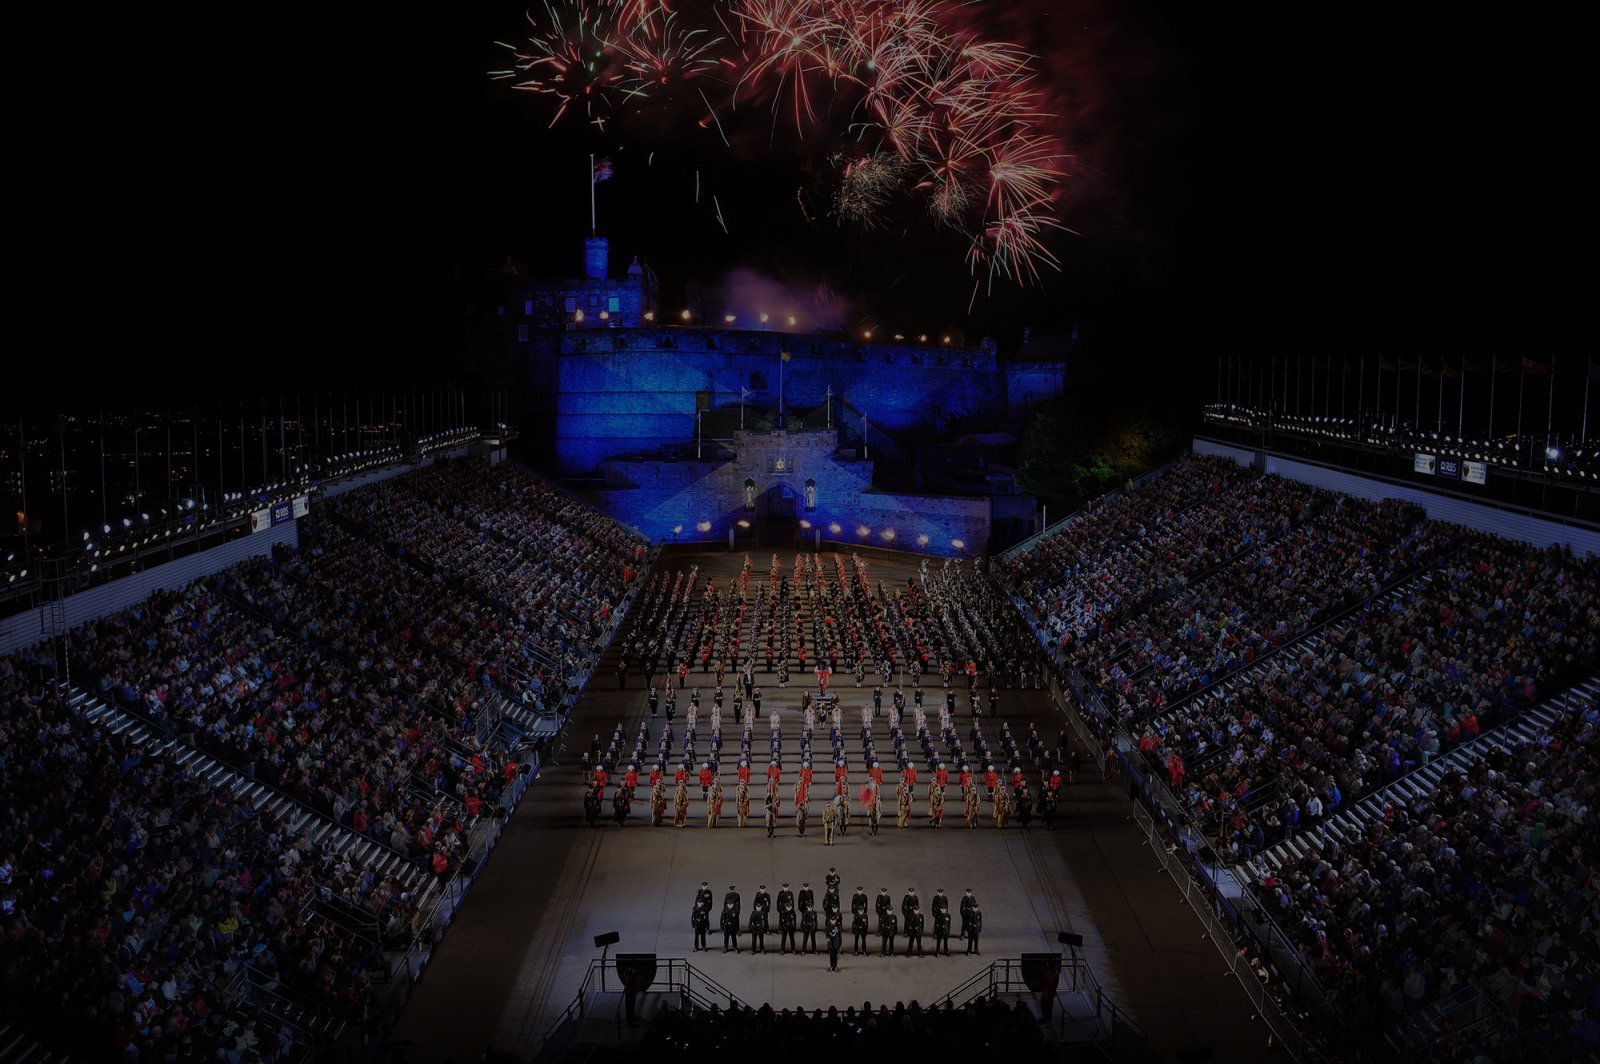 Edinburgh festival city for Royal military tattoo